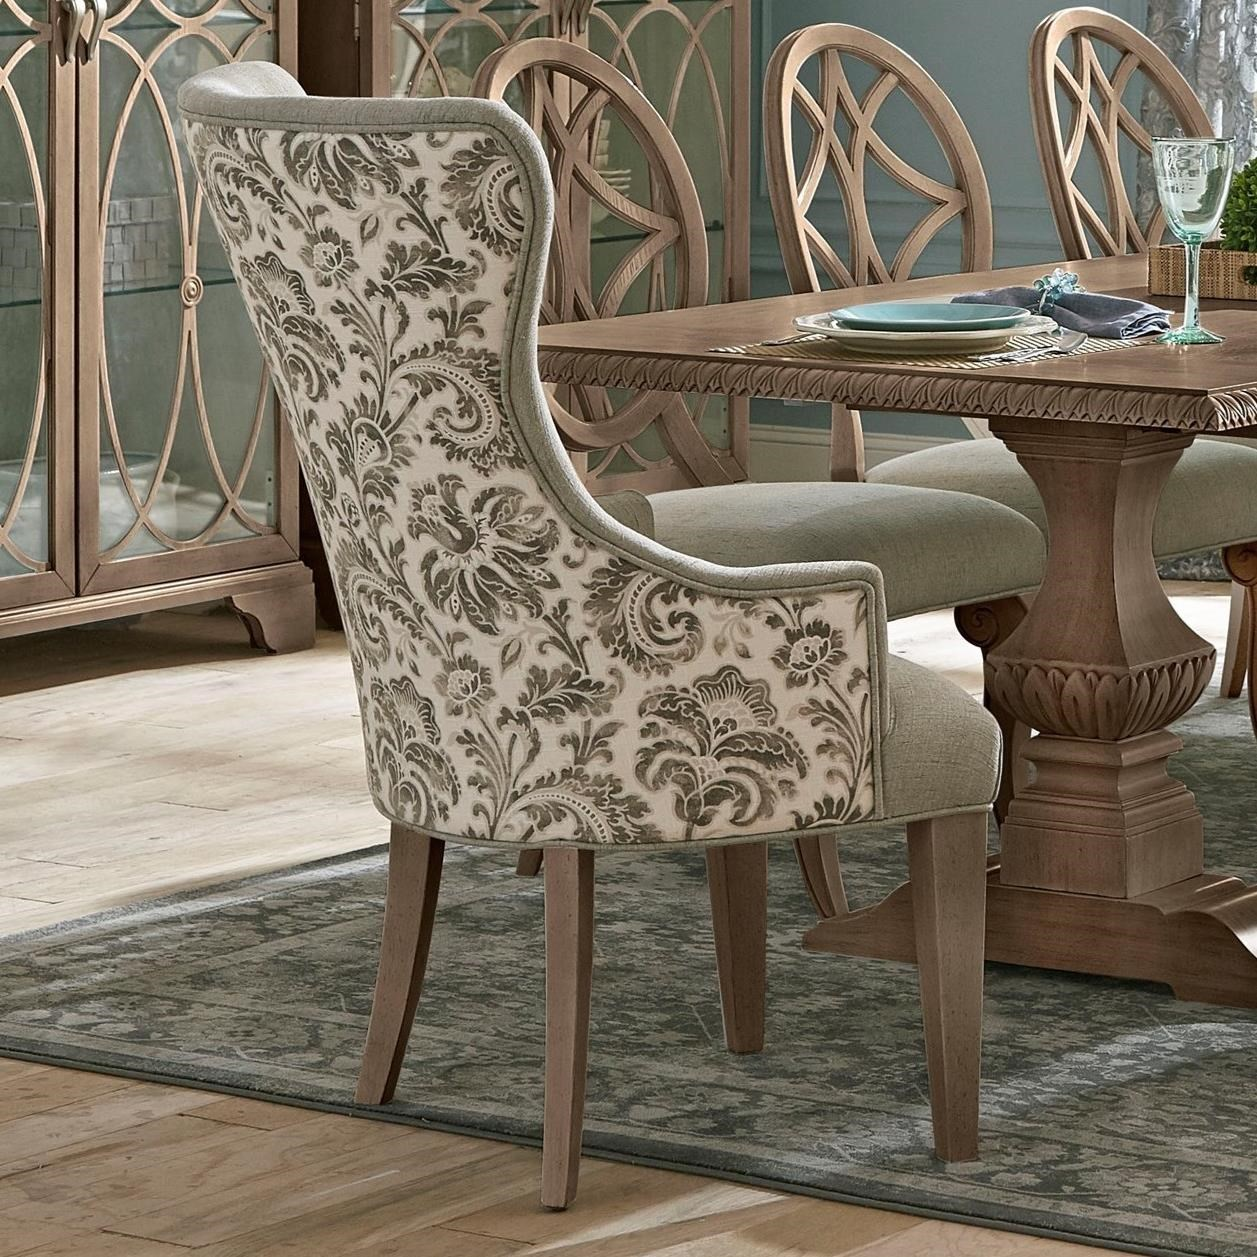 Picture of: Trisha Yearwood Home Collection By Klaussner Jasper County 791 906 Drc Vintage Dining Room Host Chair In Two Tone Fabric Sam Levitz Outlet Dining Arm Chairs